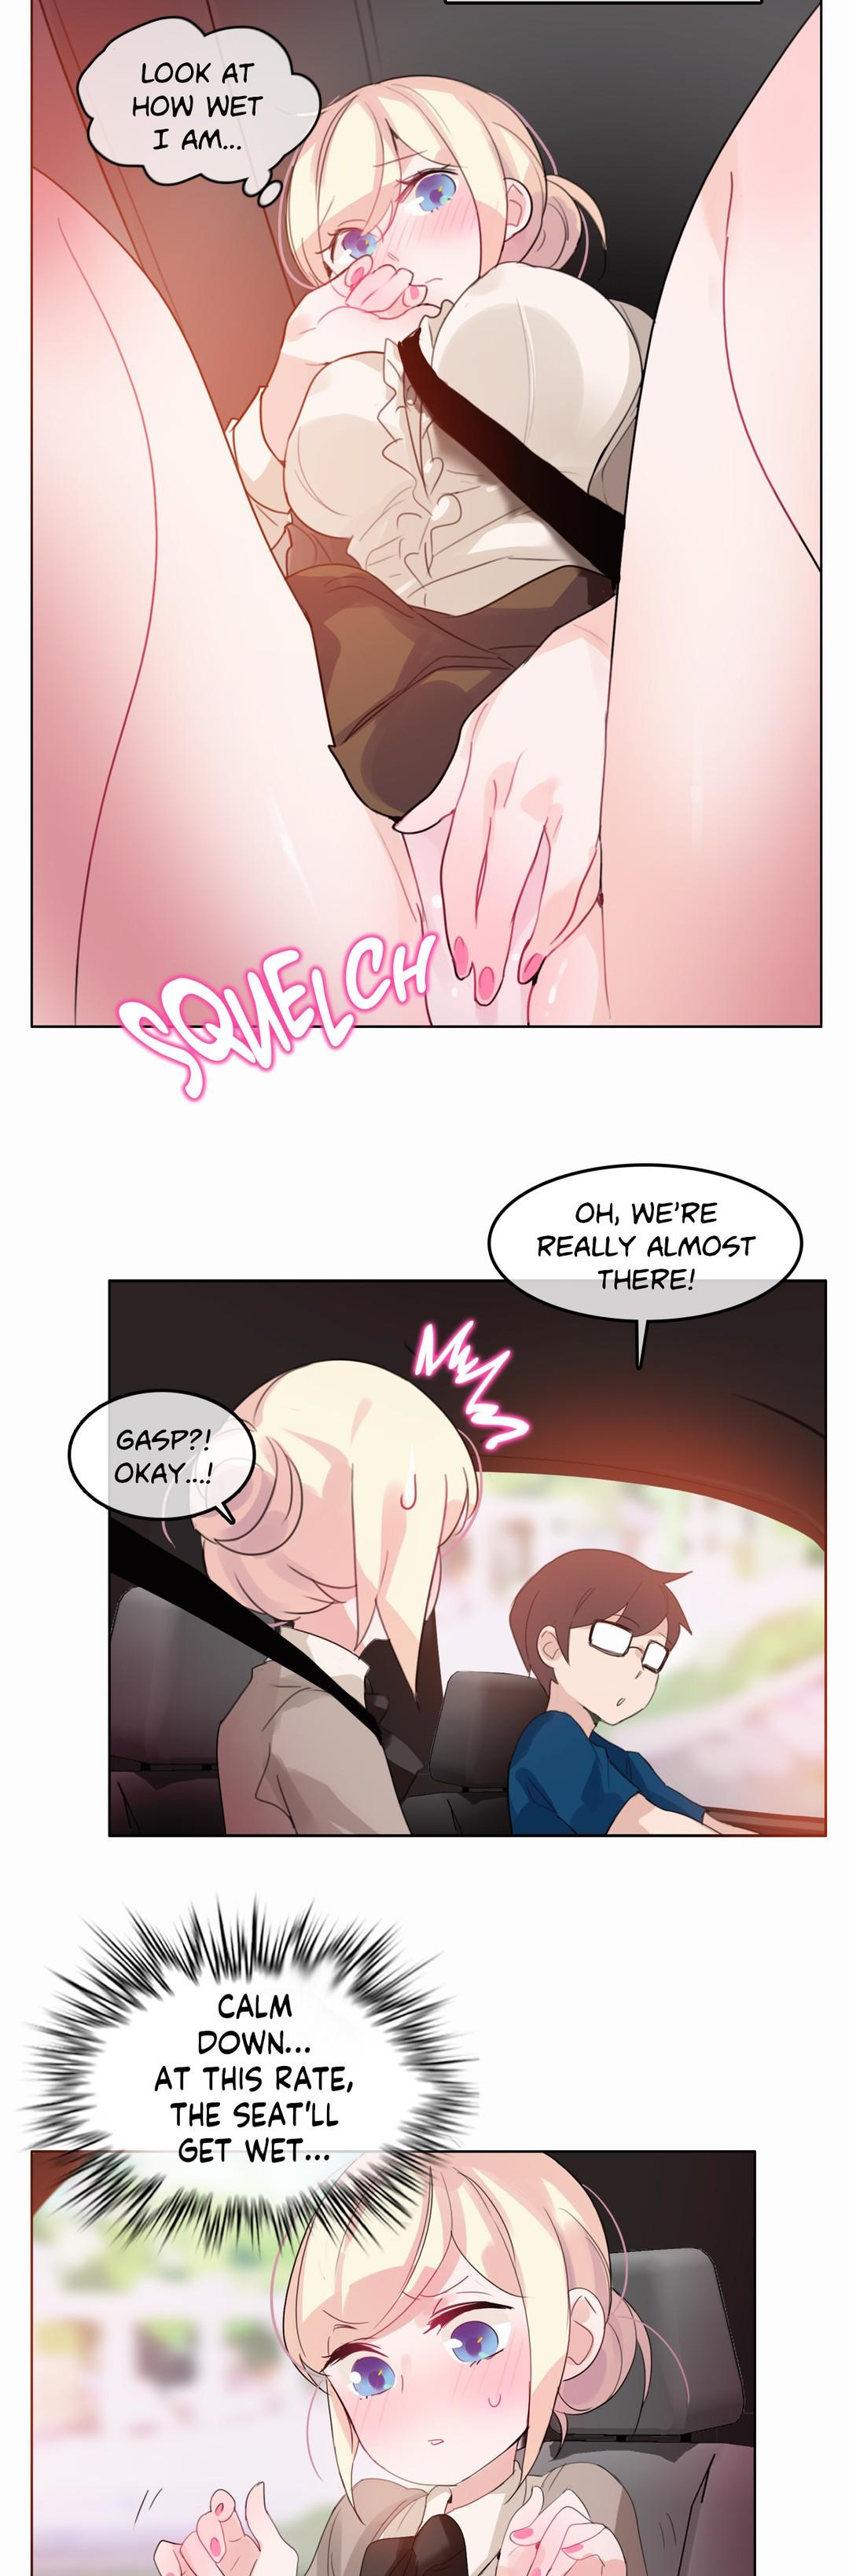 A Pervert's Daily Life Ch. 1-34 404